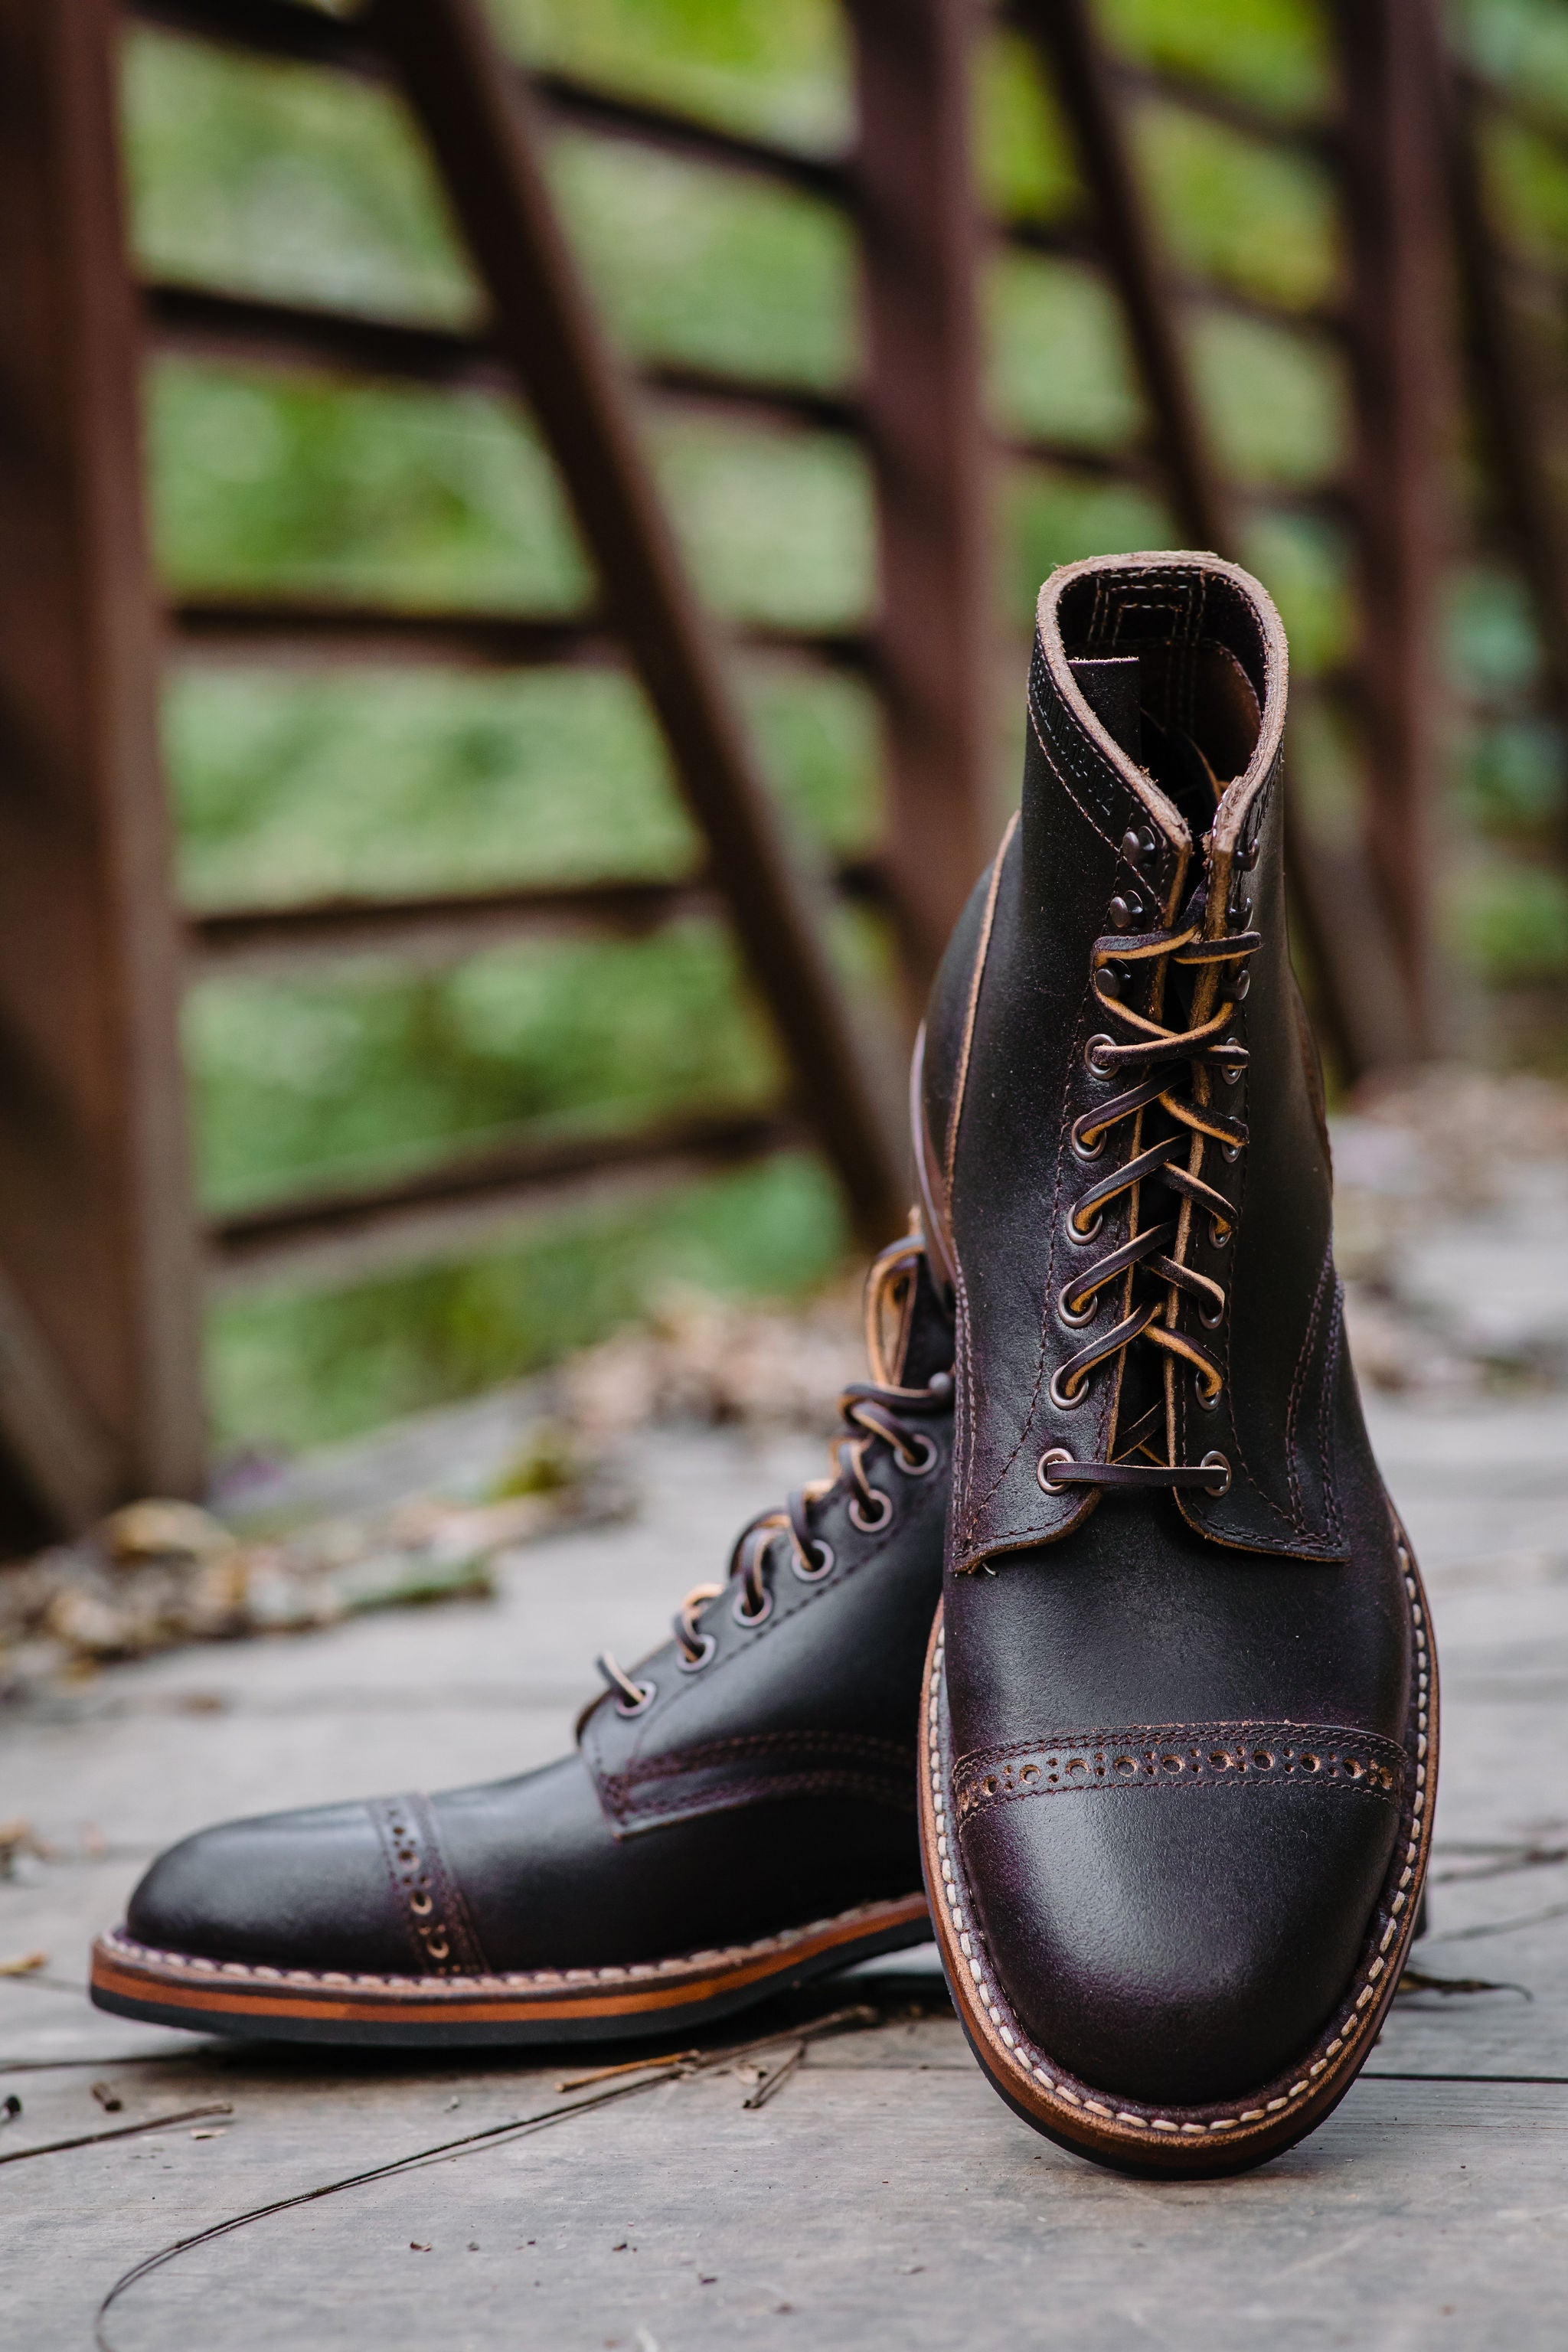 8dc712f3043 White's Boots x Franklin & Poe MP Service Boot (F&P Serial No. 18-002) -  Brown Waxed Flesh